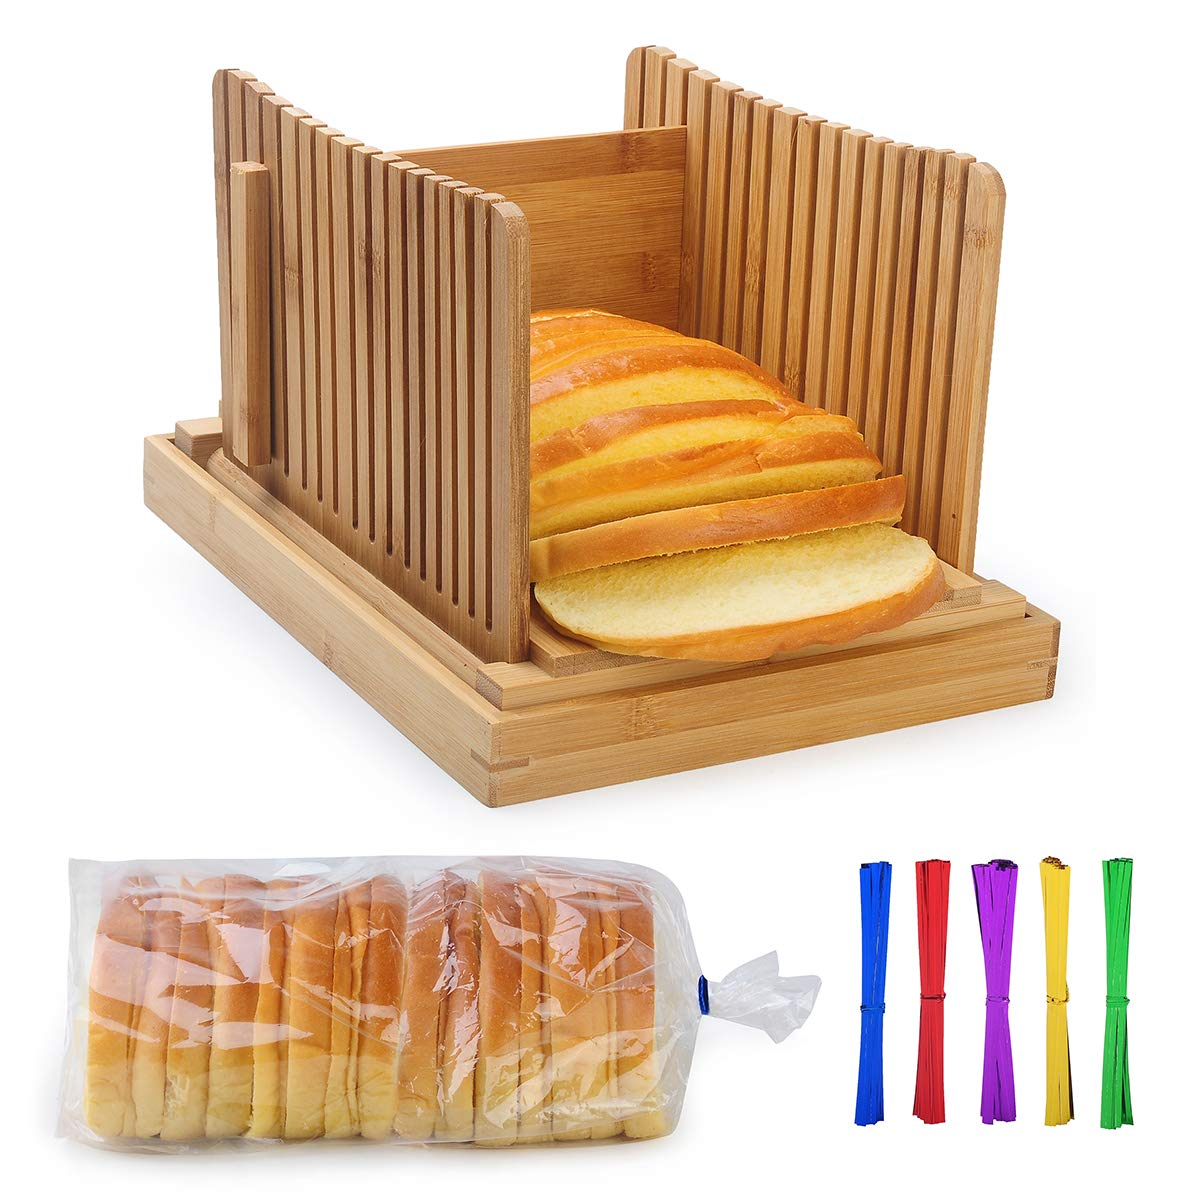 AKUNSZ Bamboo Bread Slicer Guide with Crumb Catcher, Adjustable Bread Loaf Slicer Foldable Bread Cutter Slicer - Thickness Adjustable 1/4'',3/8'',1/2''(Assembled Size 5.5''x9.3''x7'') by AKUNSZ (Image #1)